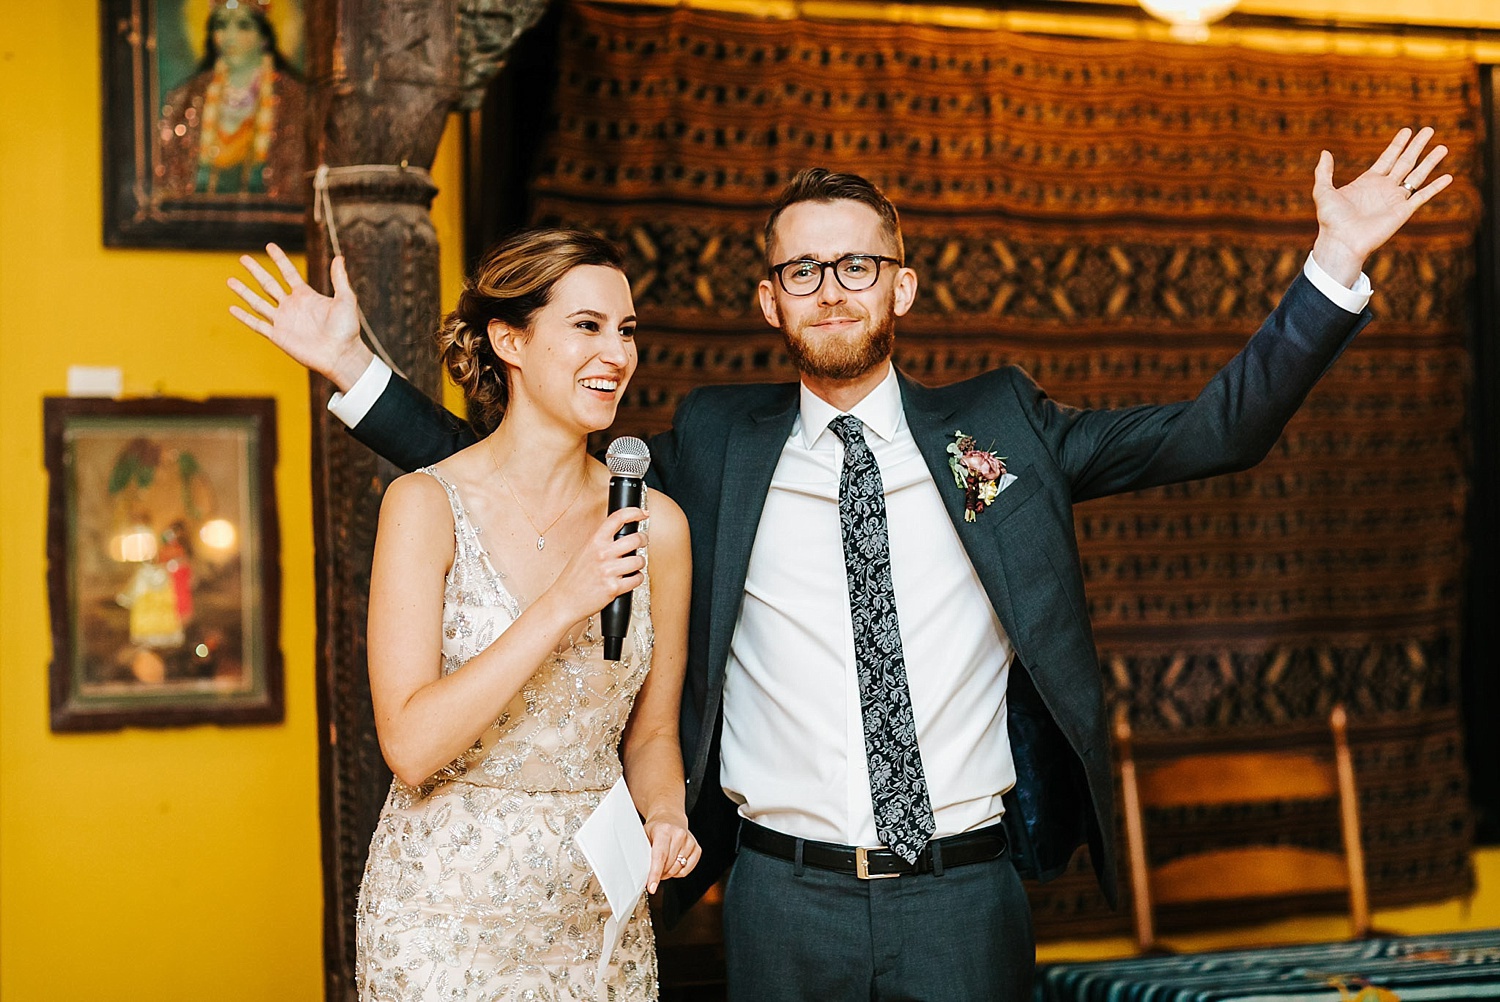 Fall wedding at material culture by danfredo photos + films